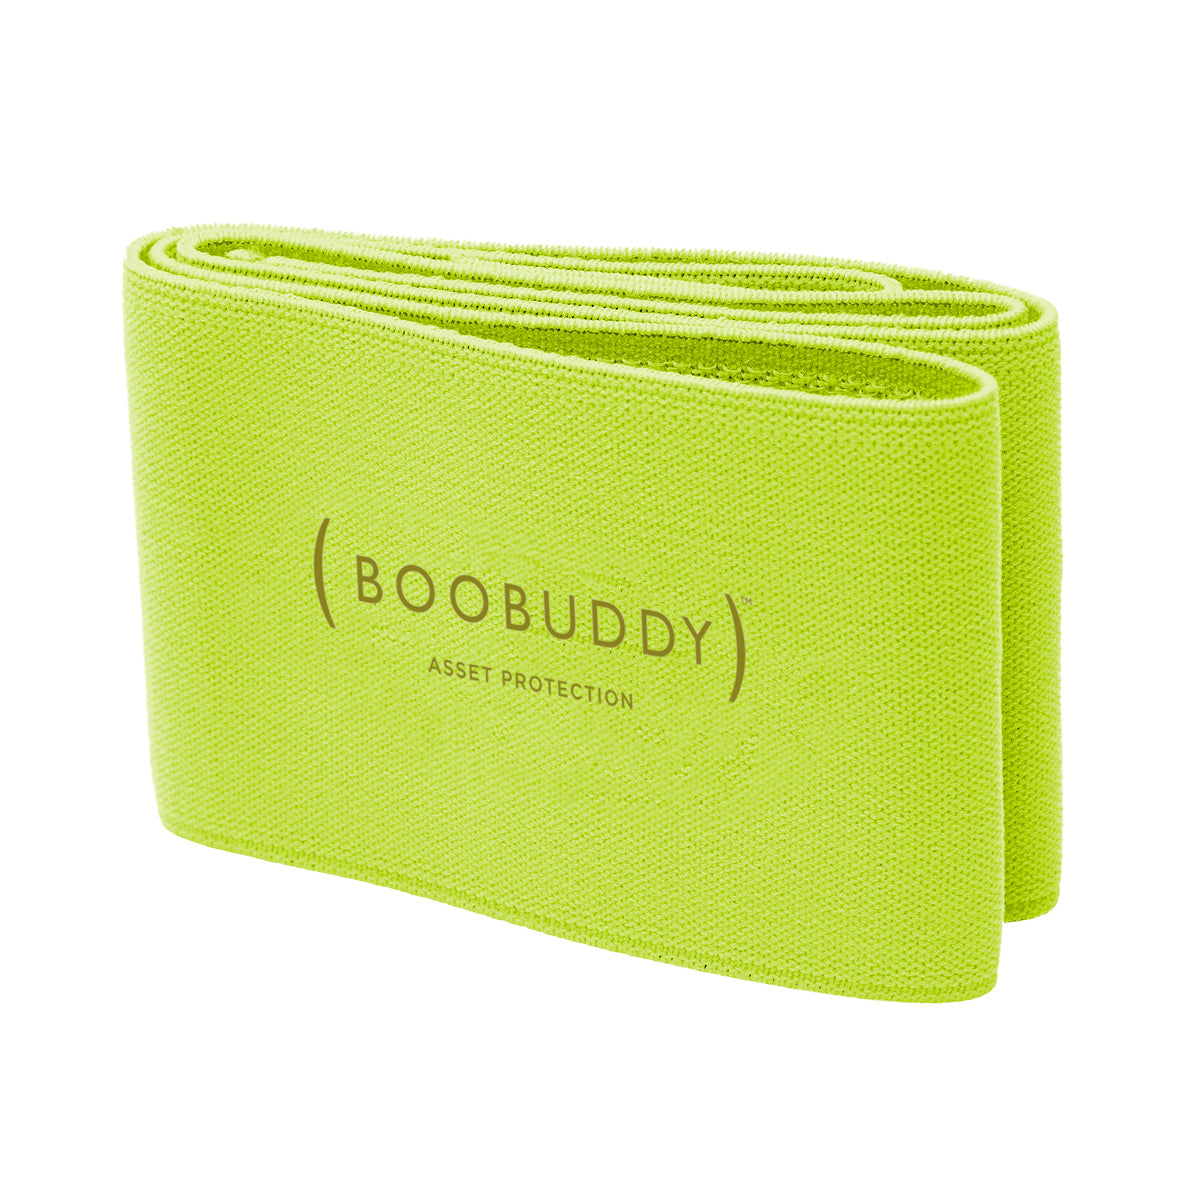 Boobuddy Adjustable Breast Support Band | Green